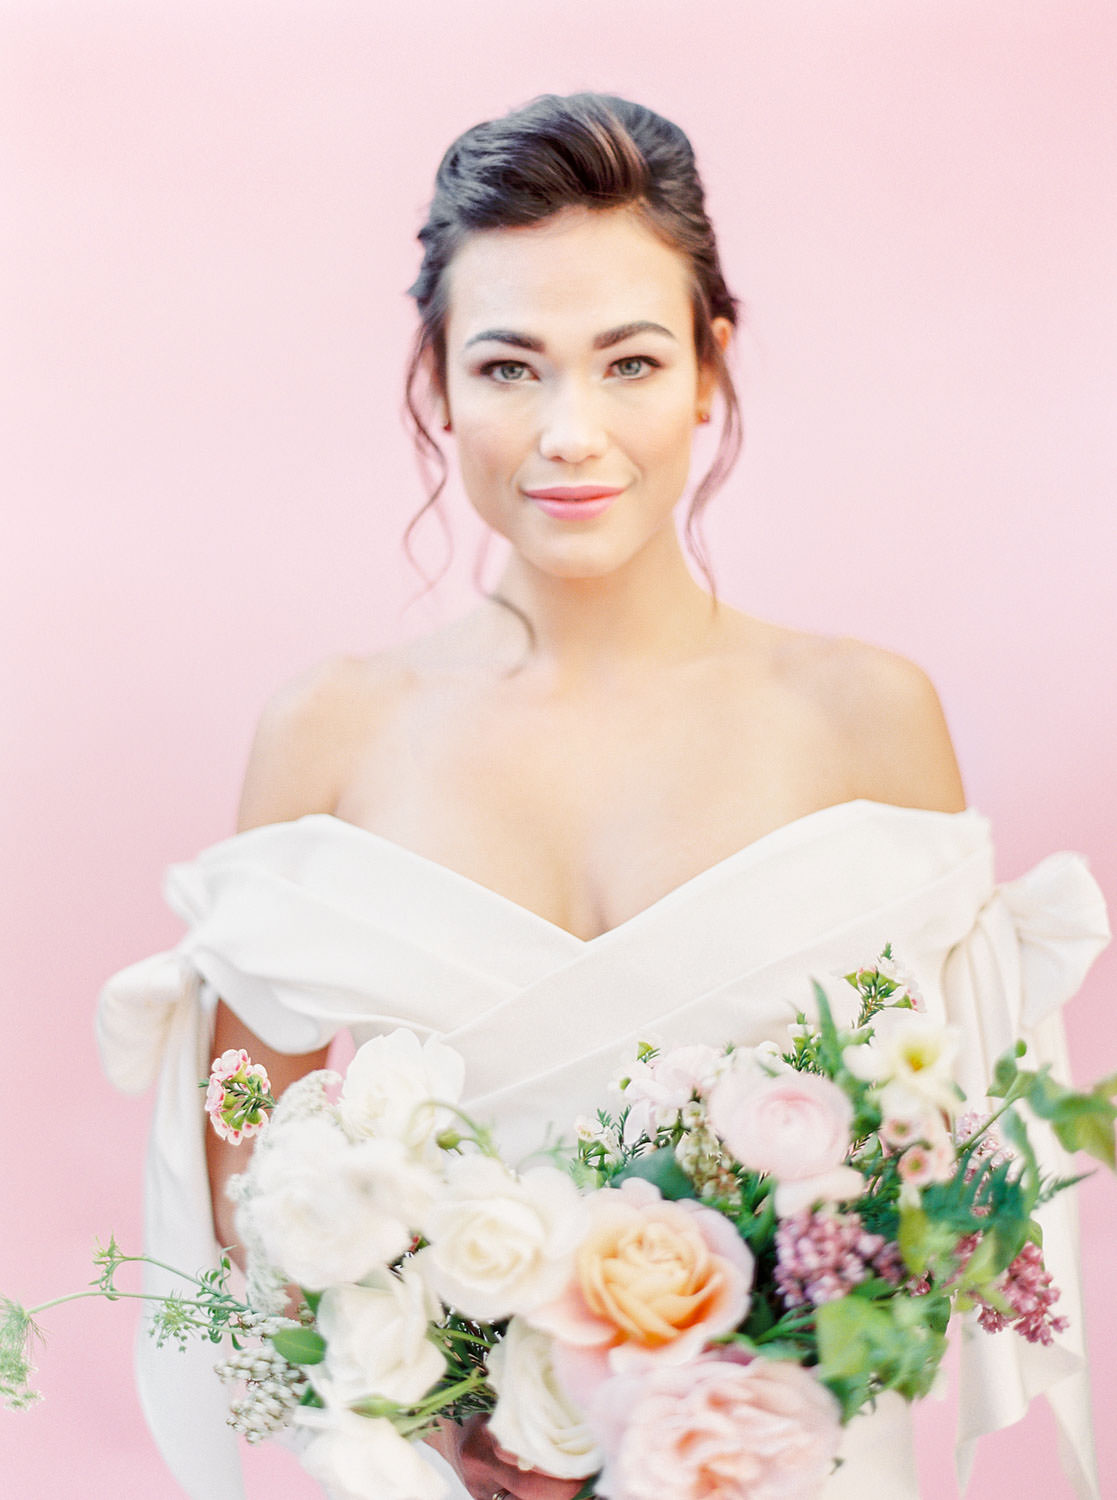 Bride in Marchesa Spring 2018 off shoulder bow gown with pink and green bouquet, Fern and Queen Anne's lace centerpieces, Pink backdrop wedding editorial on medium format Contax 645 Fuji 400h film by Cavin Elizabeth Photography